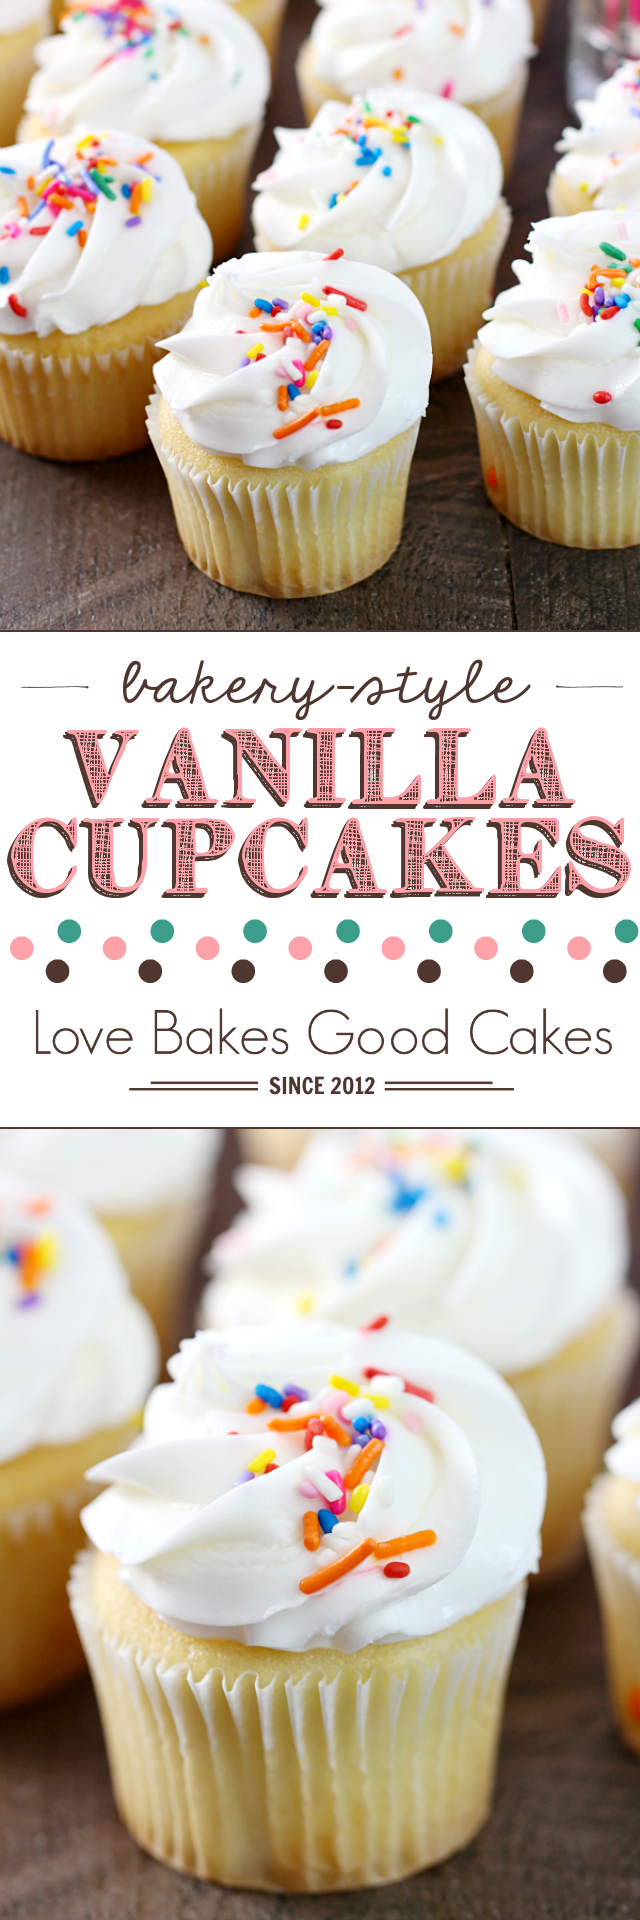 Bakery-Style Vanilla Cupcakes with white frosting and rainbow sprinkles collage.